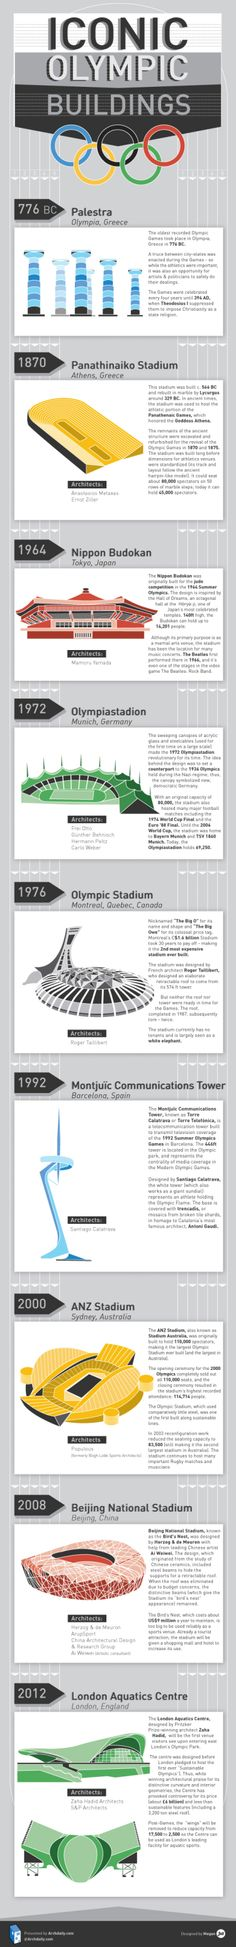 Mooie infographic over Iconic Olympic Buildings!